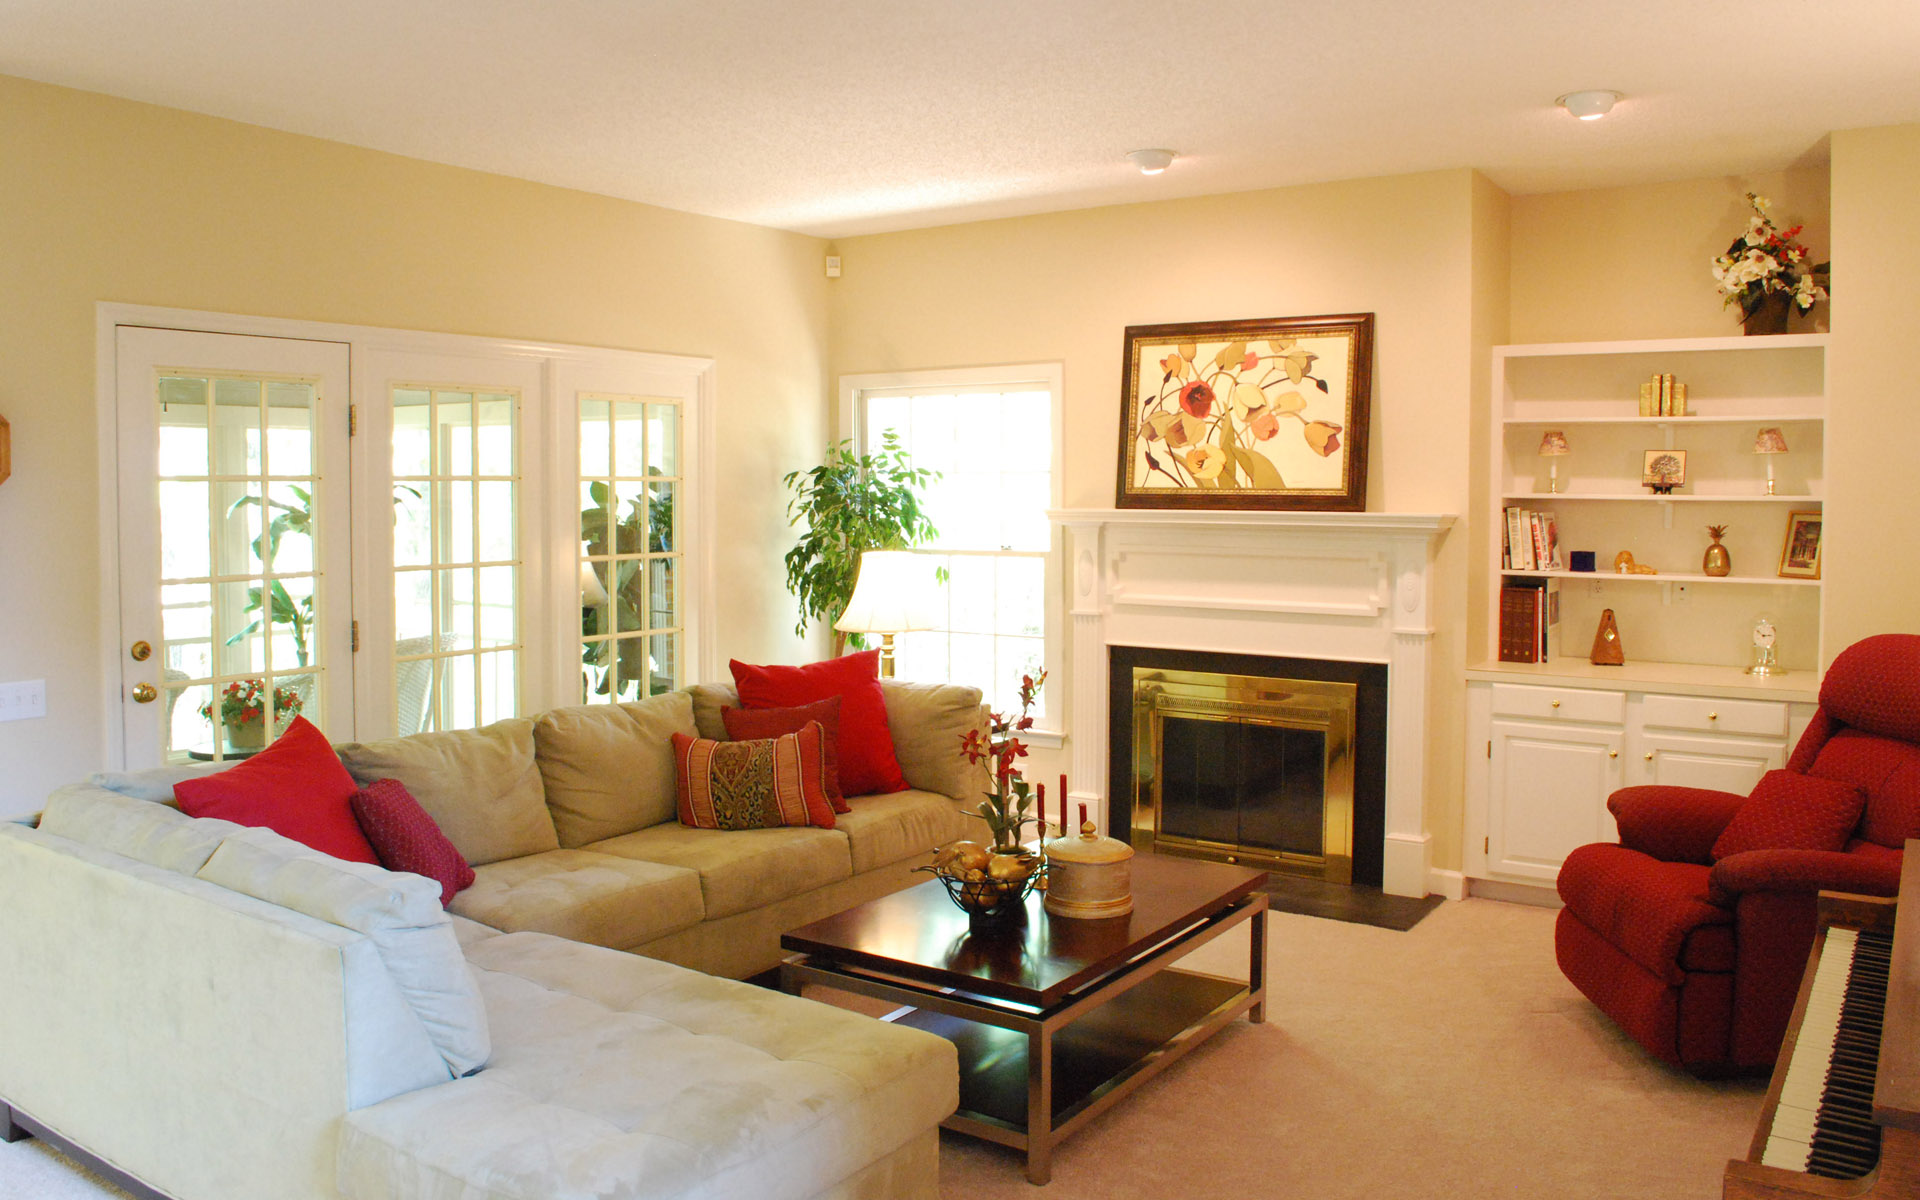 Western-style home fireplace 23122